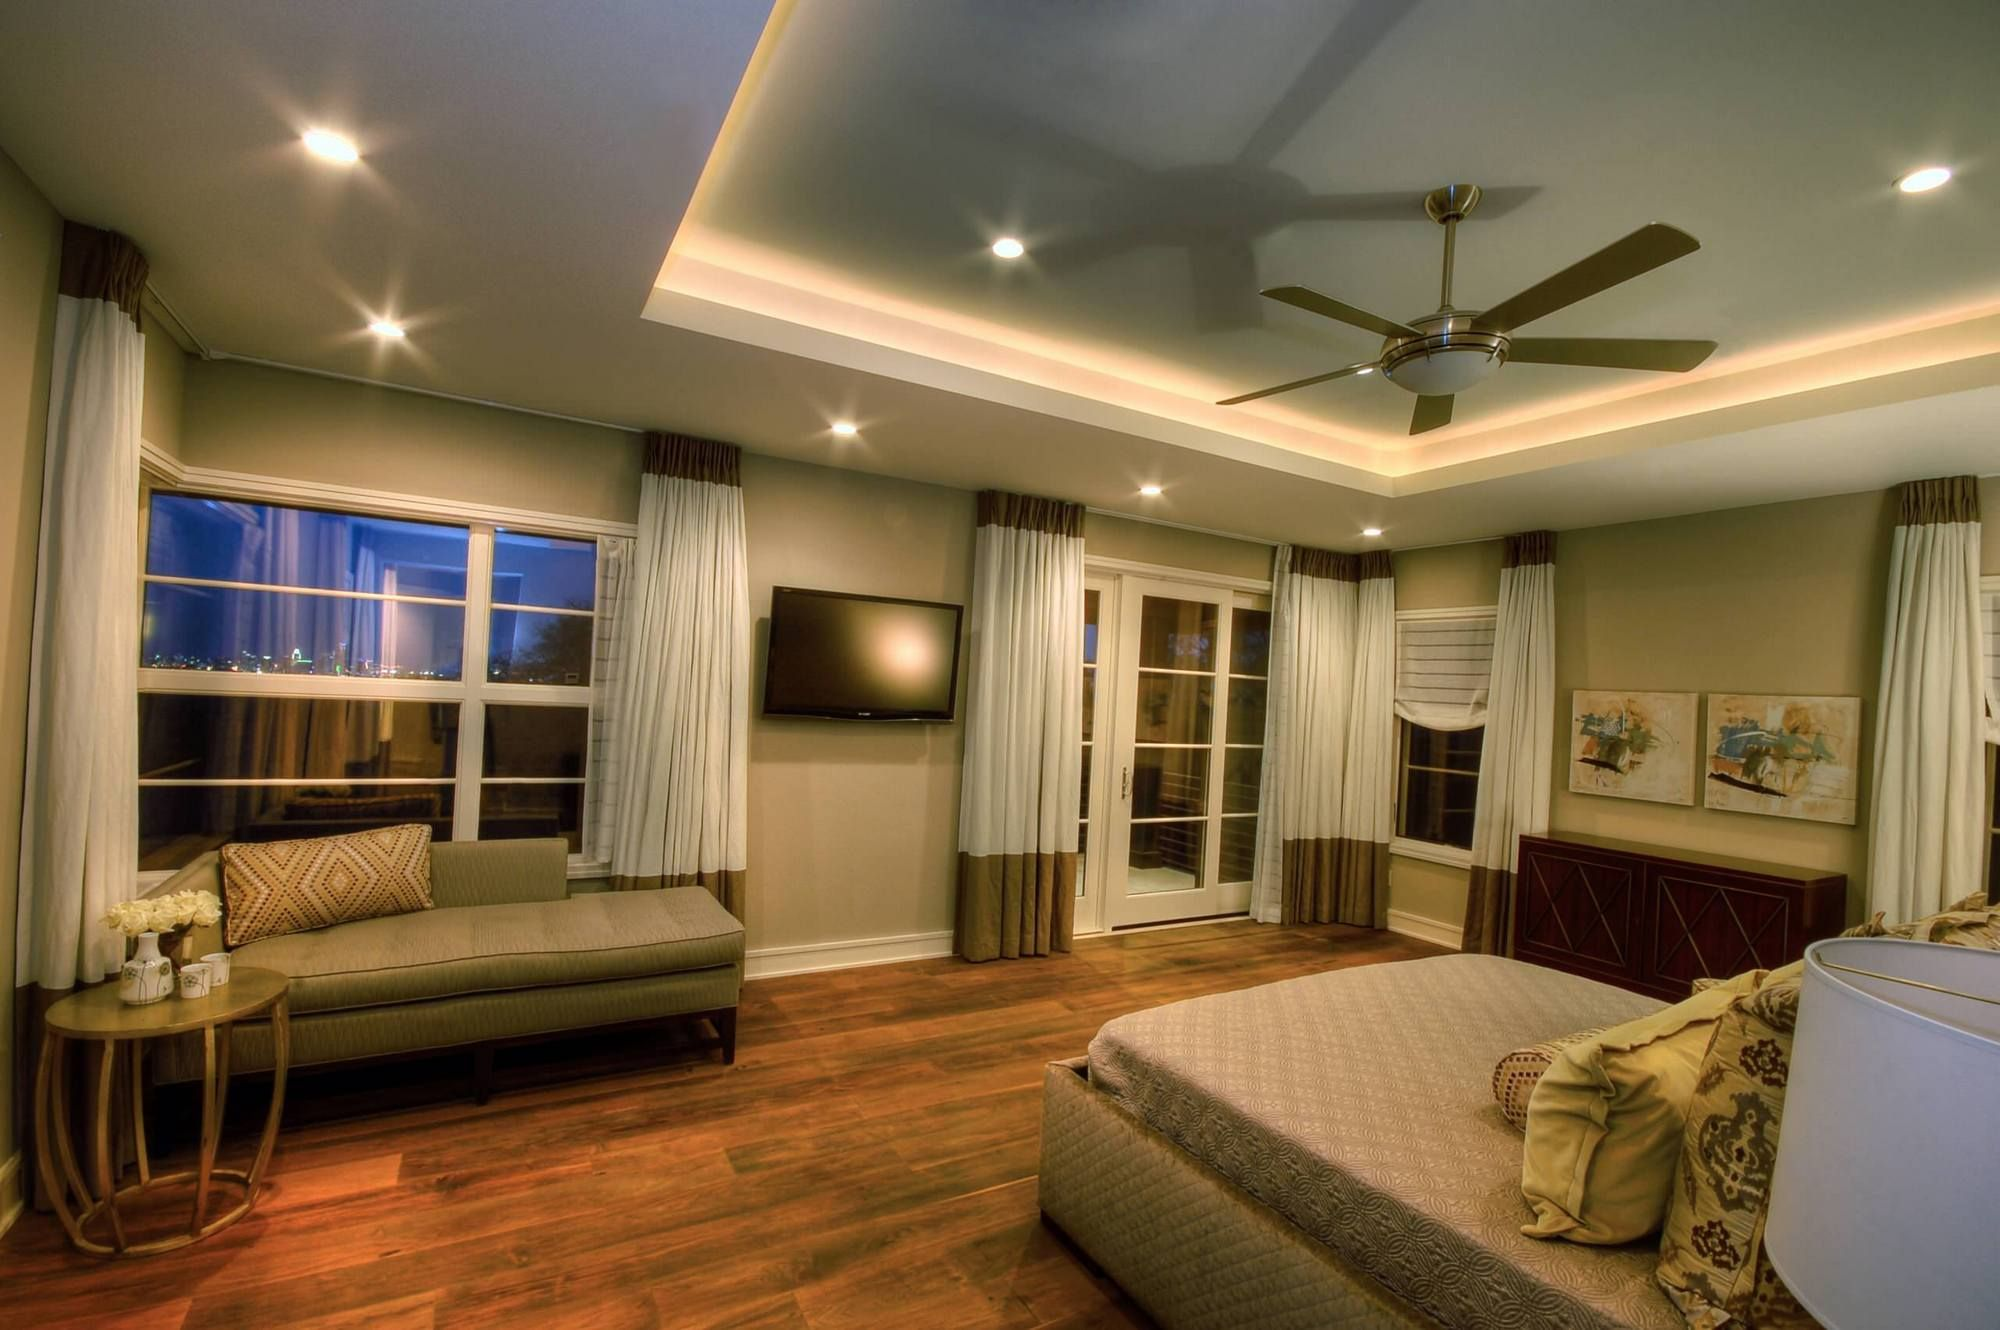 Indirect Lighting Around The Tray Ceiling Usual House False Ceiling Bedroom Bedroom Design Bedroom Ceiling Light